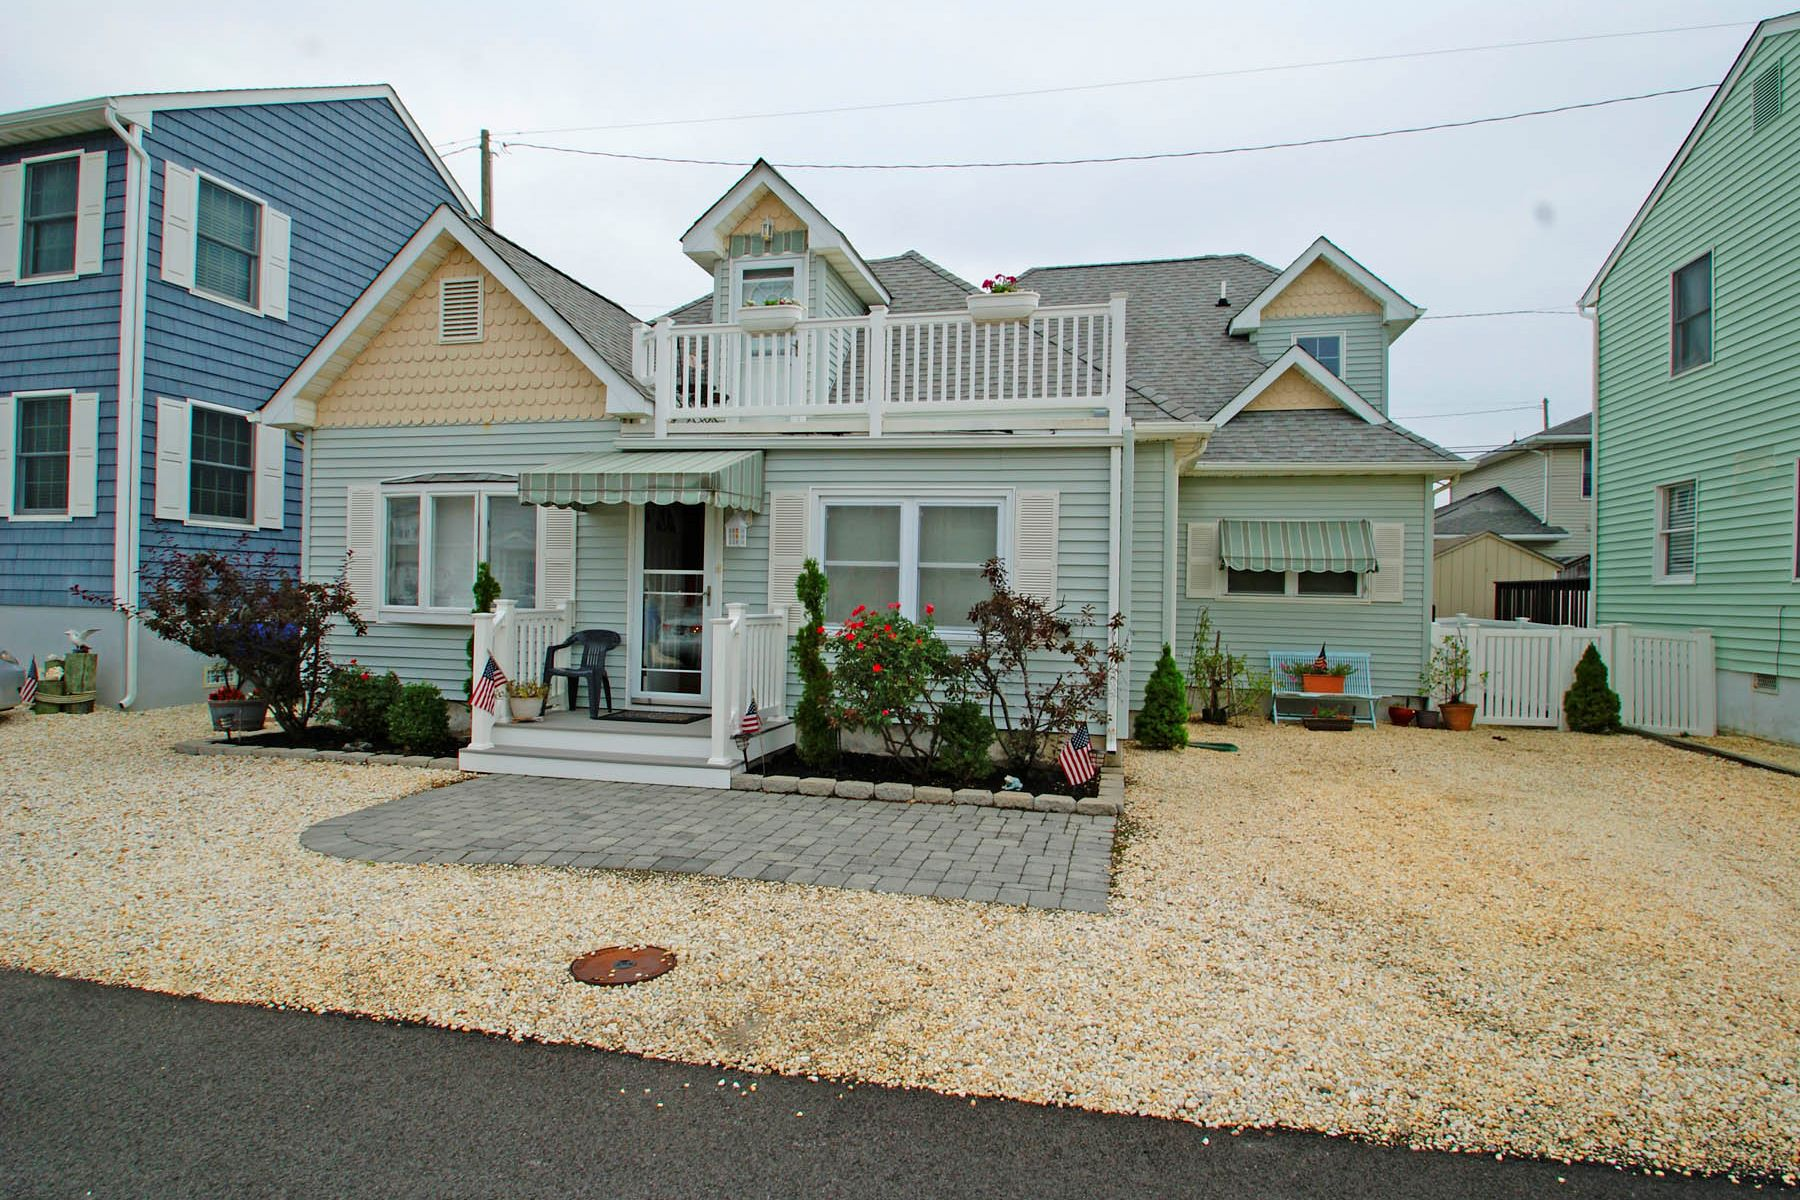 Single Family Homes for Sale at Lovely Home Perfect For Year Round Or Vacation Home 128 Marshmallow Road Lavallette, New Jersey 08735 United States